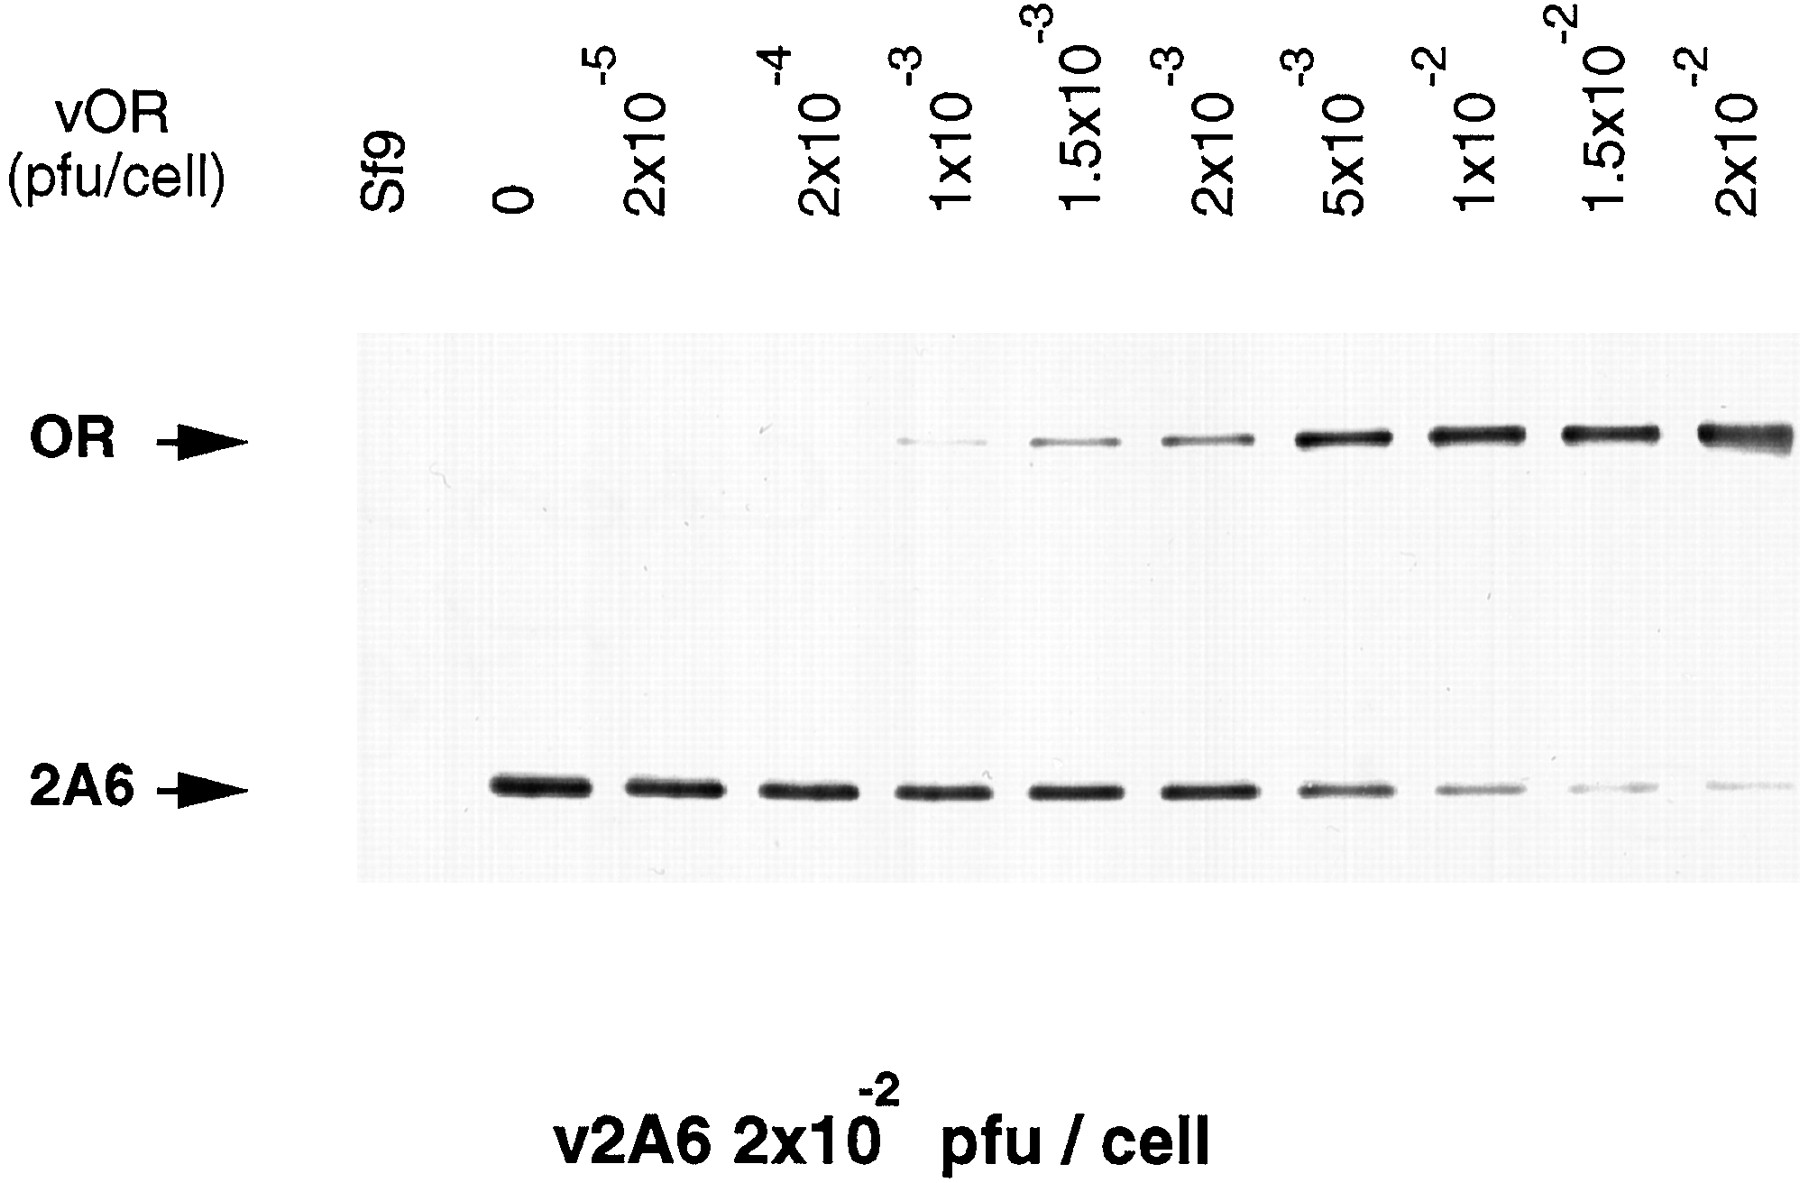 Coexpression of Cytochrome P4502A6 and Human NADPH-P450